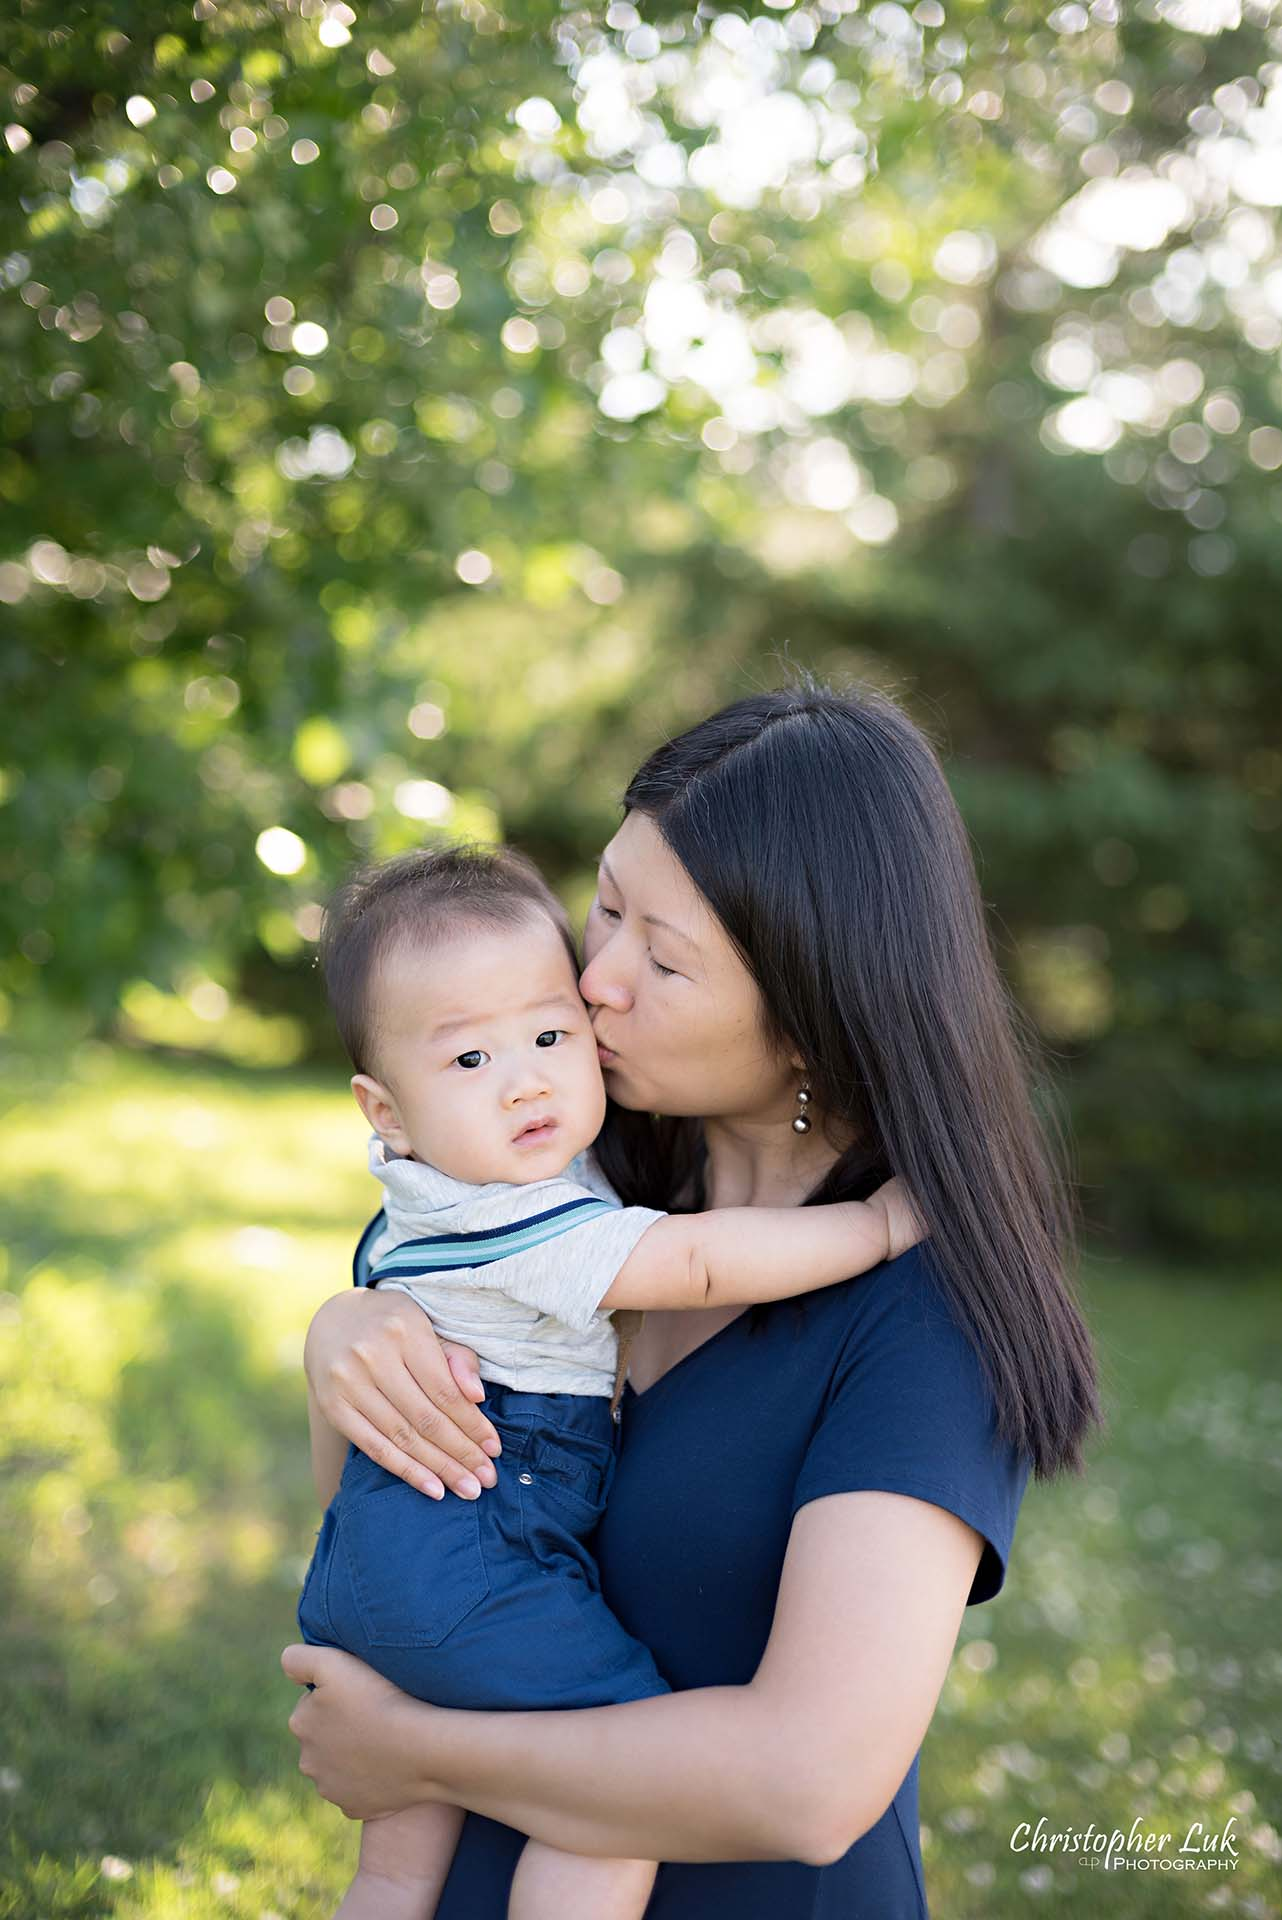 Christopher Luk Family Baby Wedding Photographer Richmond Hill Markham Toronto - Candid Natural Photojournalistic Mother Mom Motherhood Baby Smile Cute Adorable Hold Hug Kiss